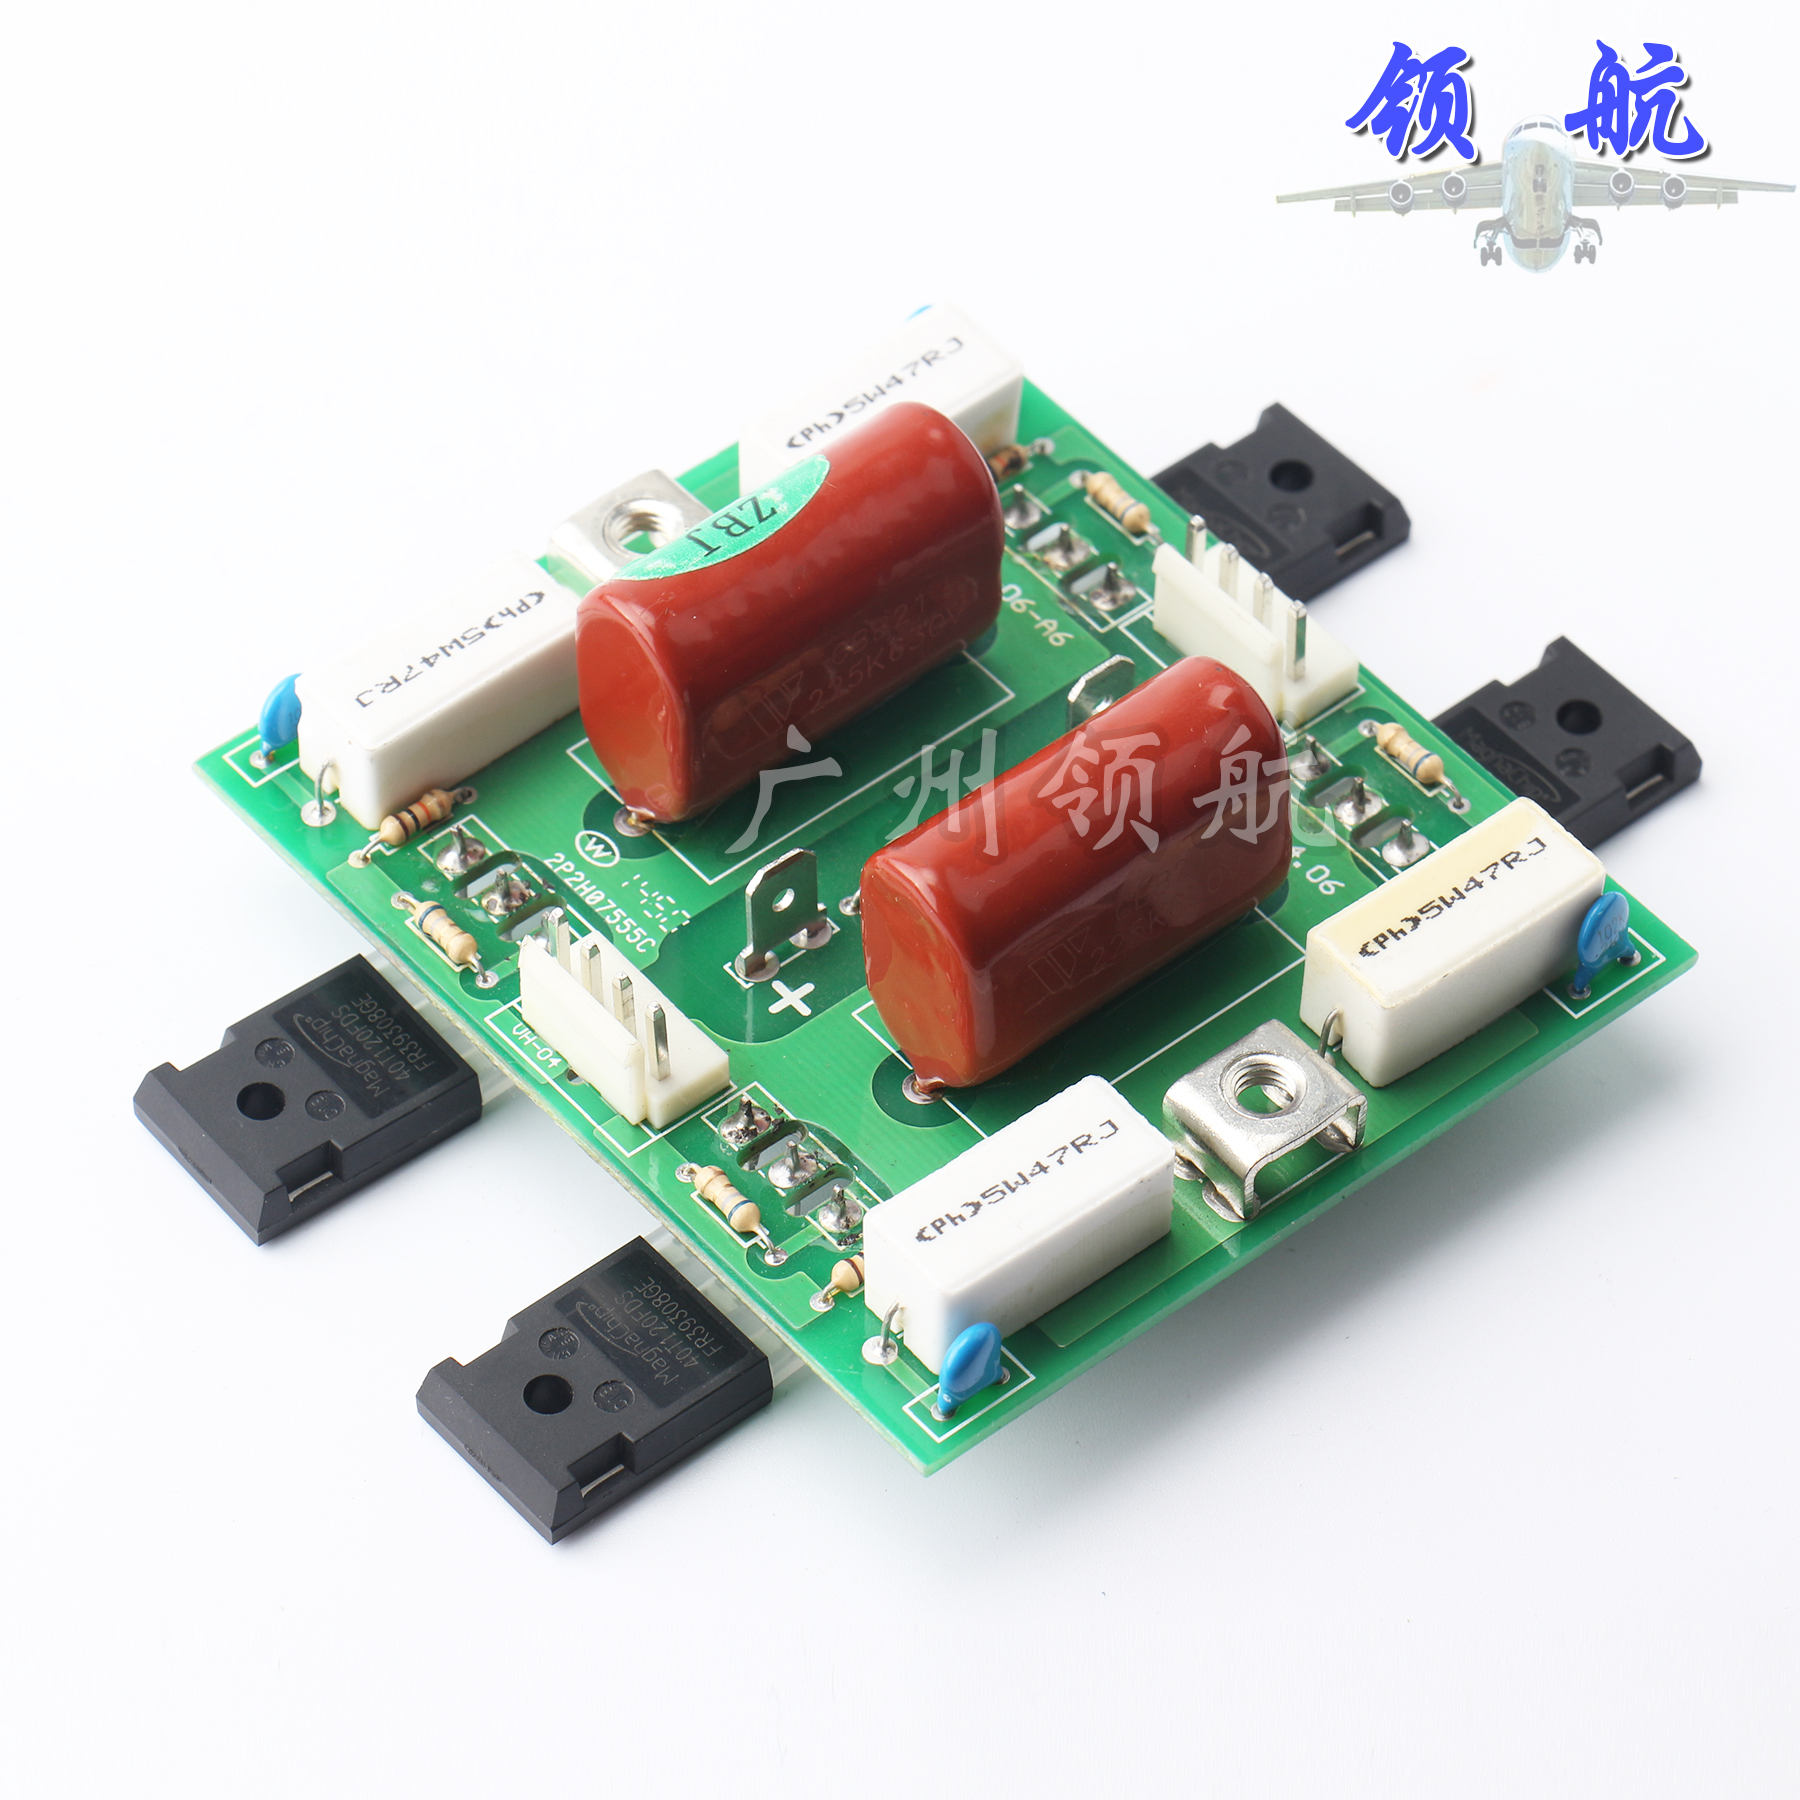 Zx7 400 Igbt Pcb For Modules Inverter Welding Machine Circuit Of Welder Arc200 View Dc Zx7400t 400s Board Accessories